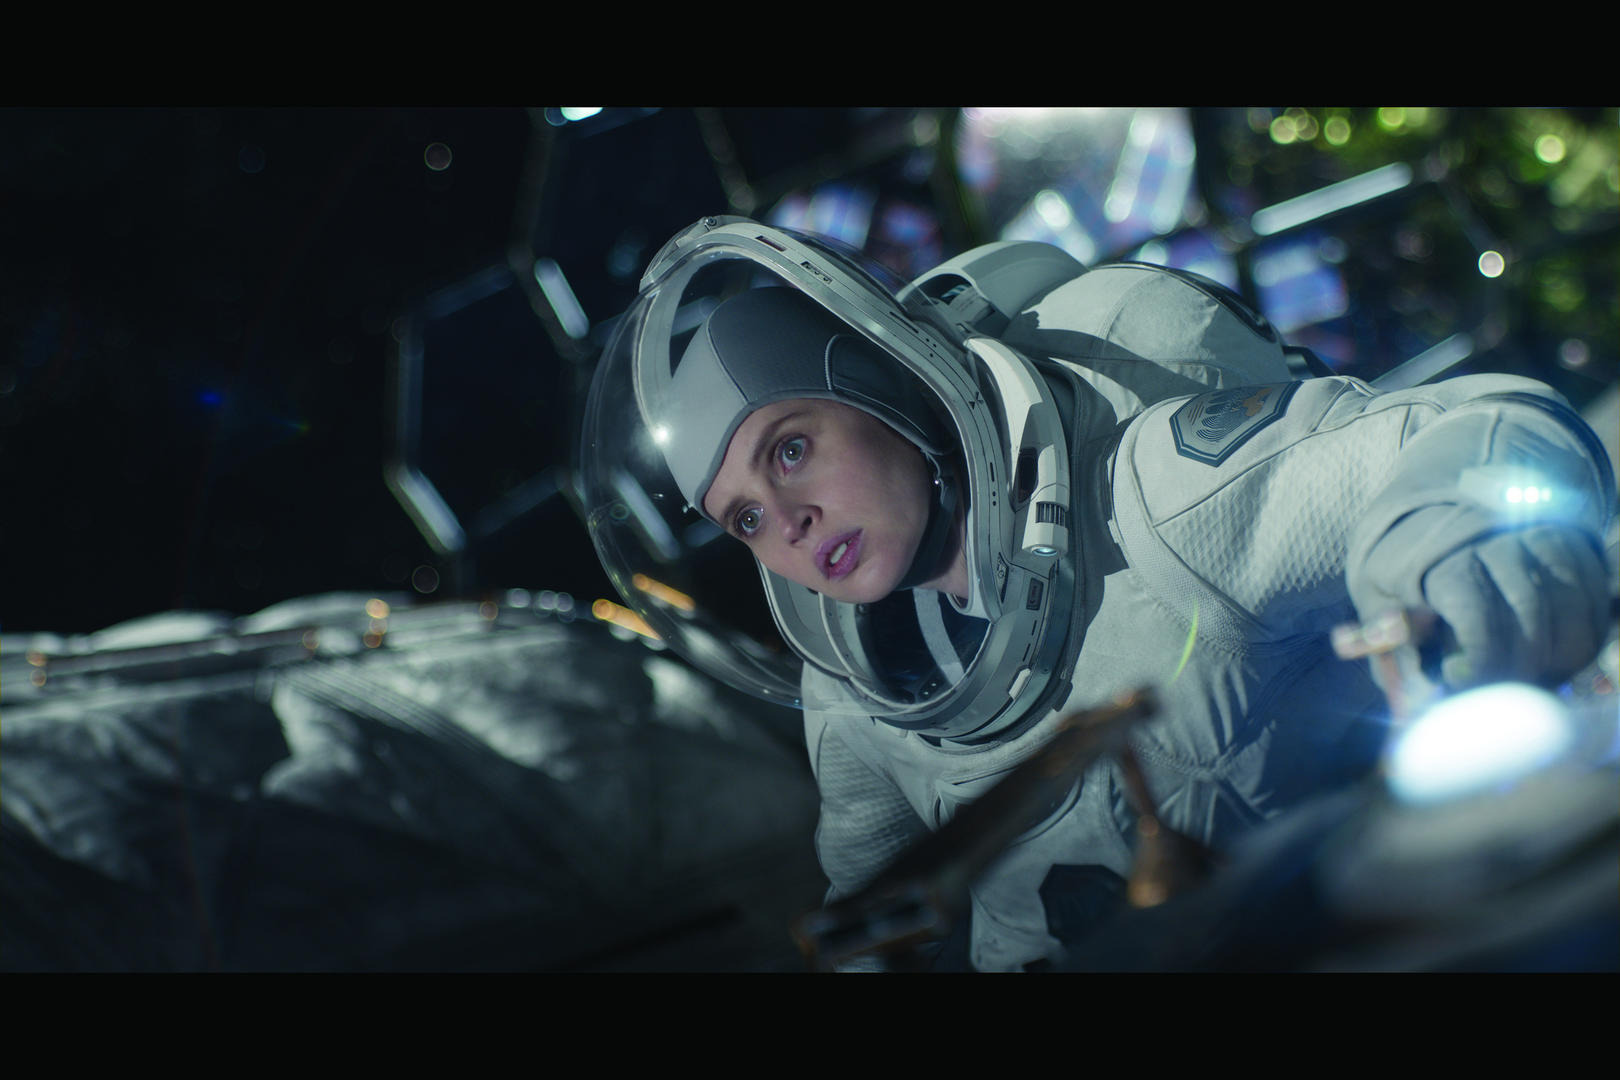 THE MIDNIGHT SKY: Check Out The First Trailer For Netflix's Sci-Fi Drama Starring George Clooney